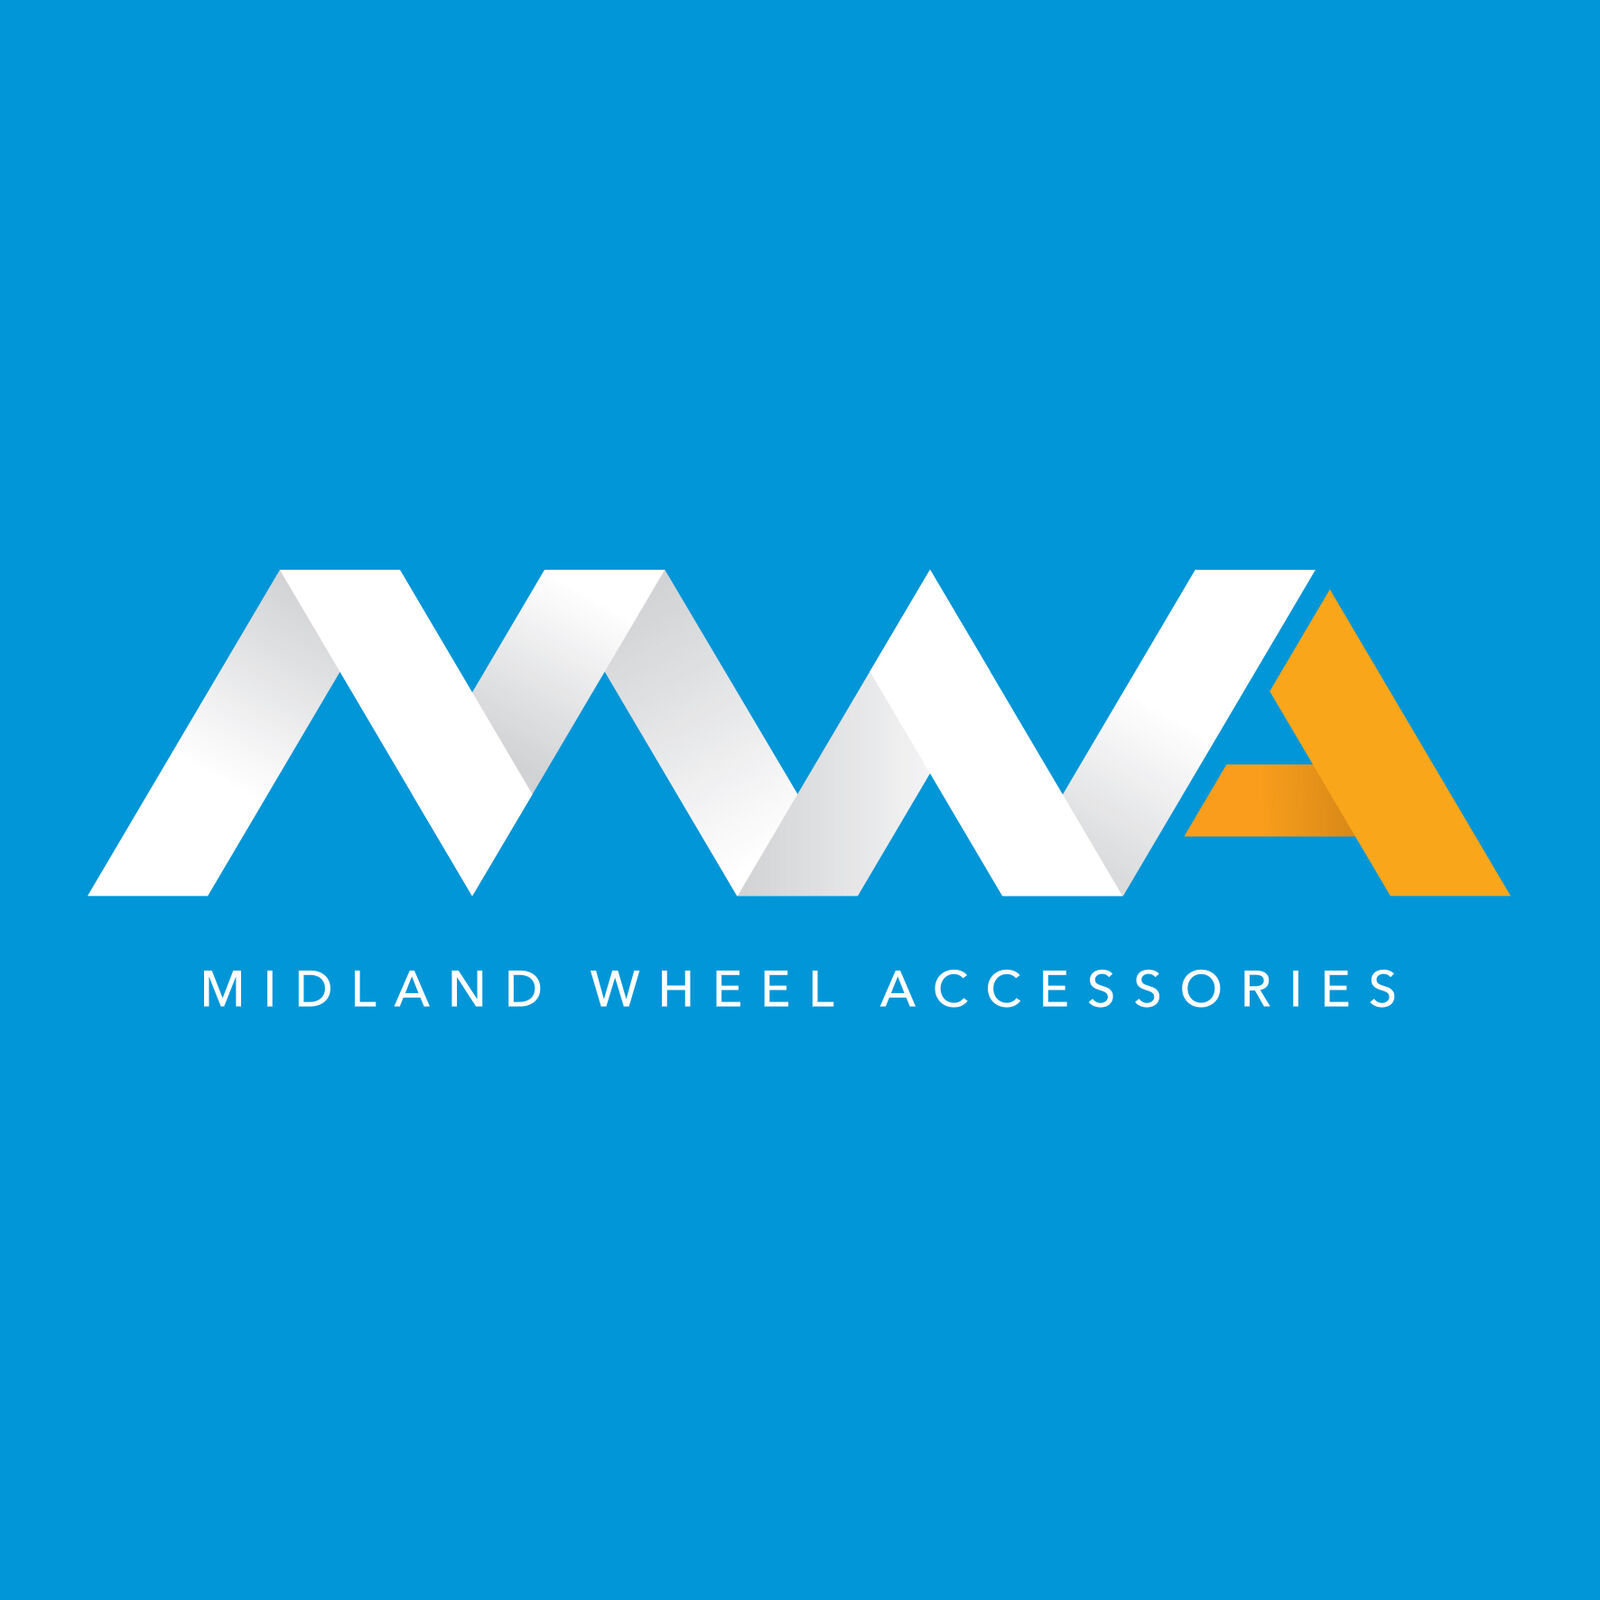 Midland Wheel Accessories